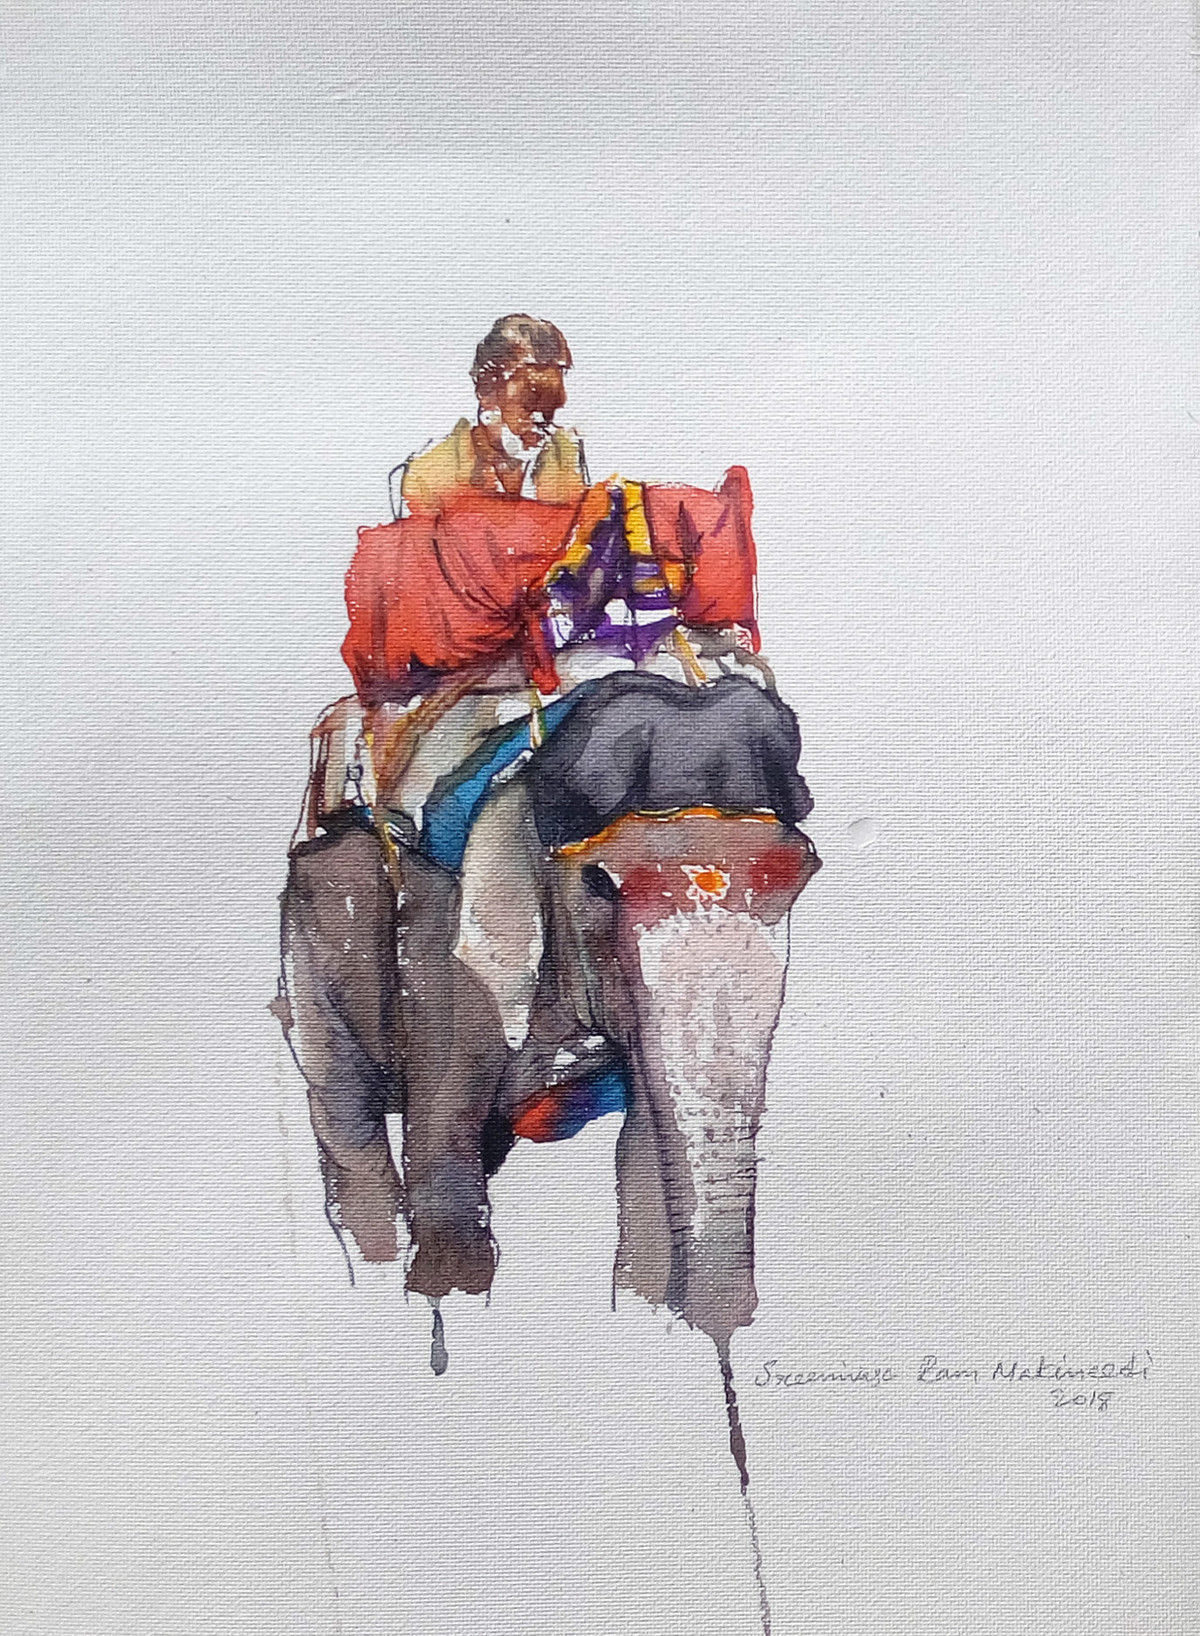 Man on Elephant by Sreenivasa Ram Makineedi, Impressionism Painting, Watercolor & Ink on Paper, Gray color